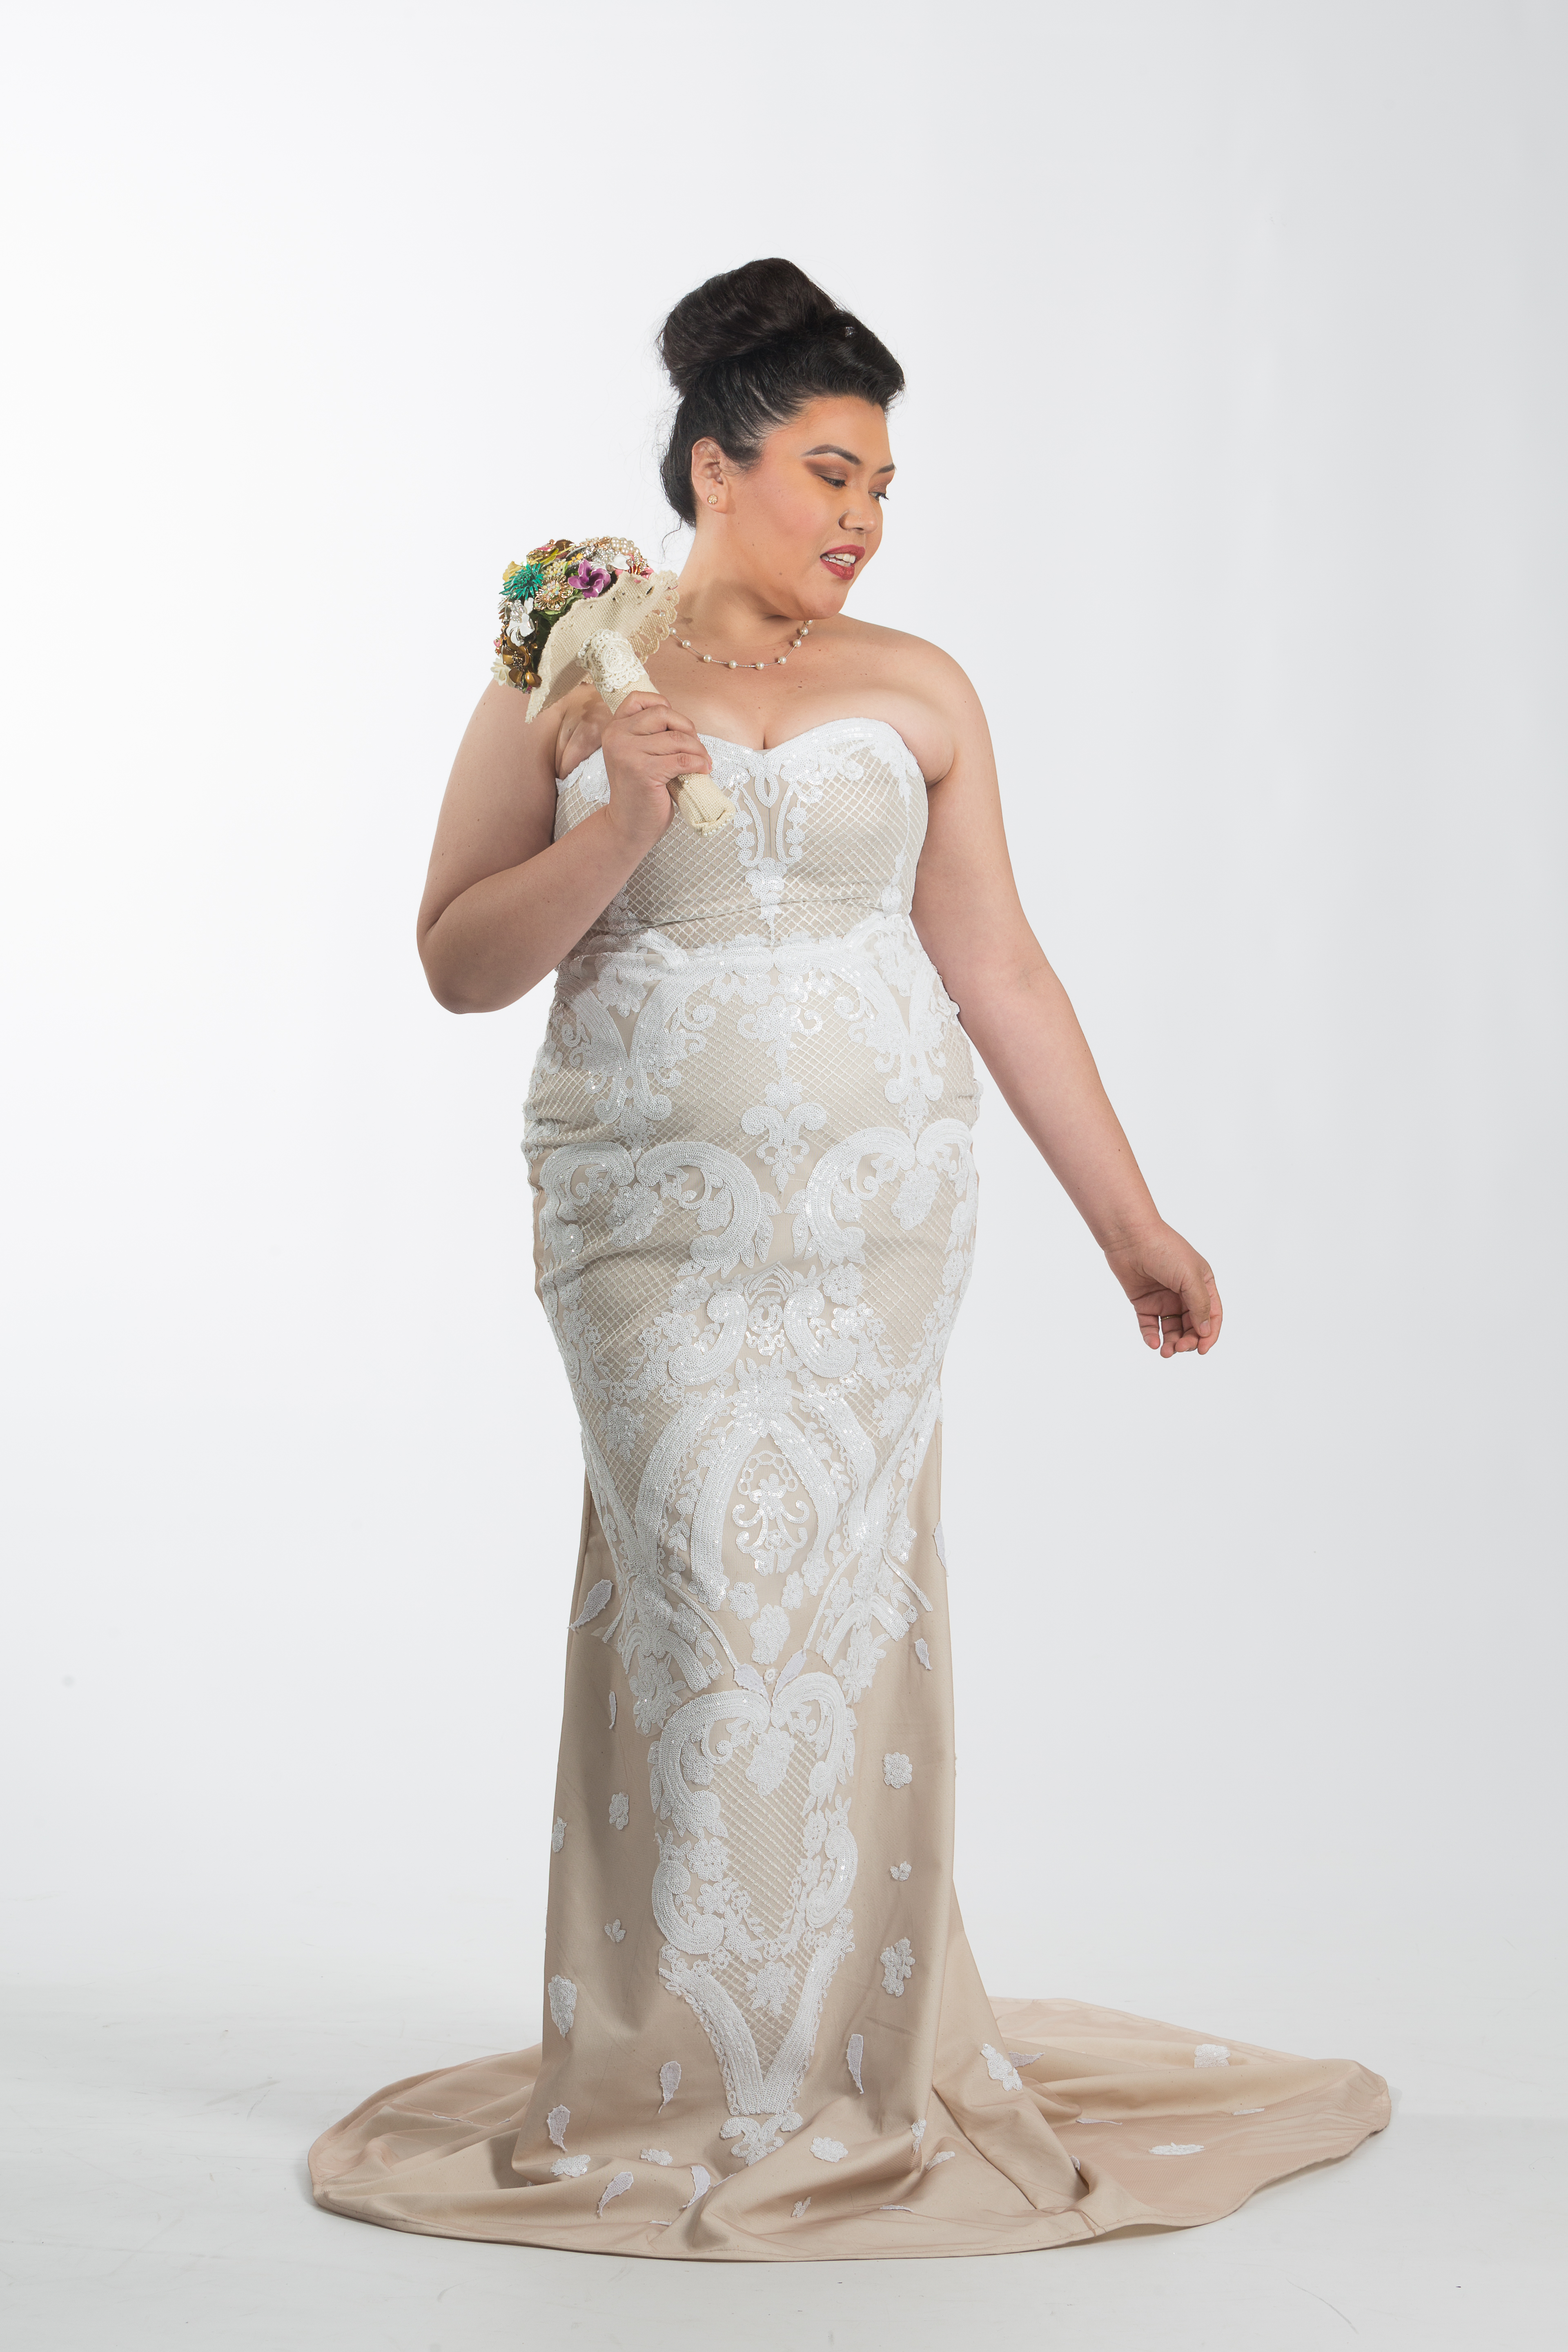 Strapless Nude Couture Plus Size Wedding Dress Ndiritzy